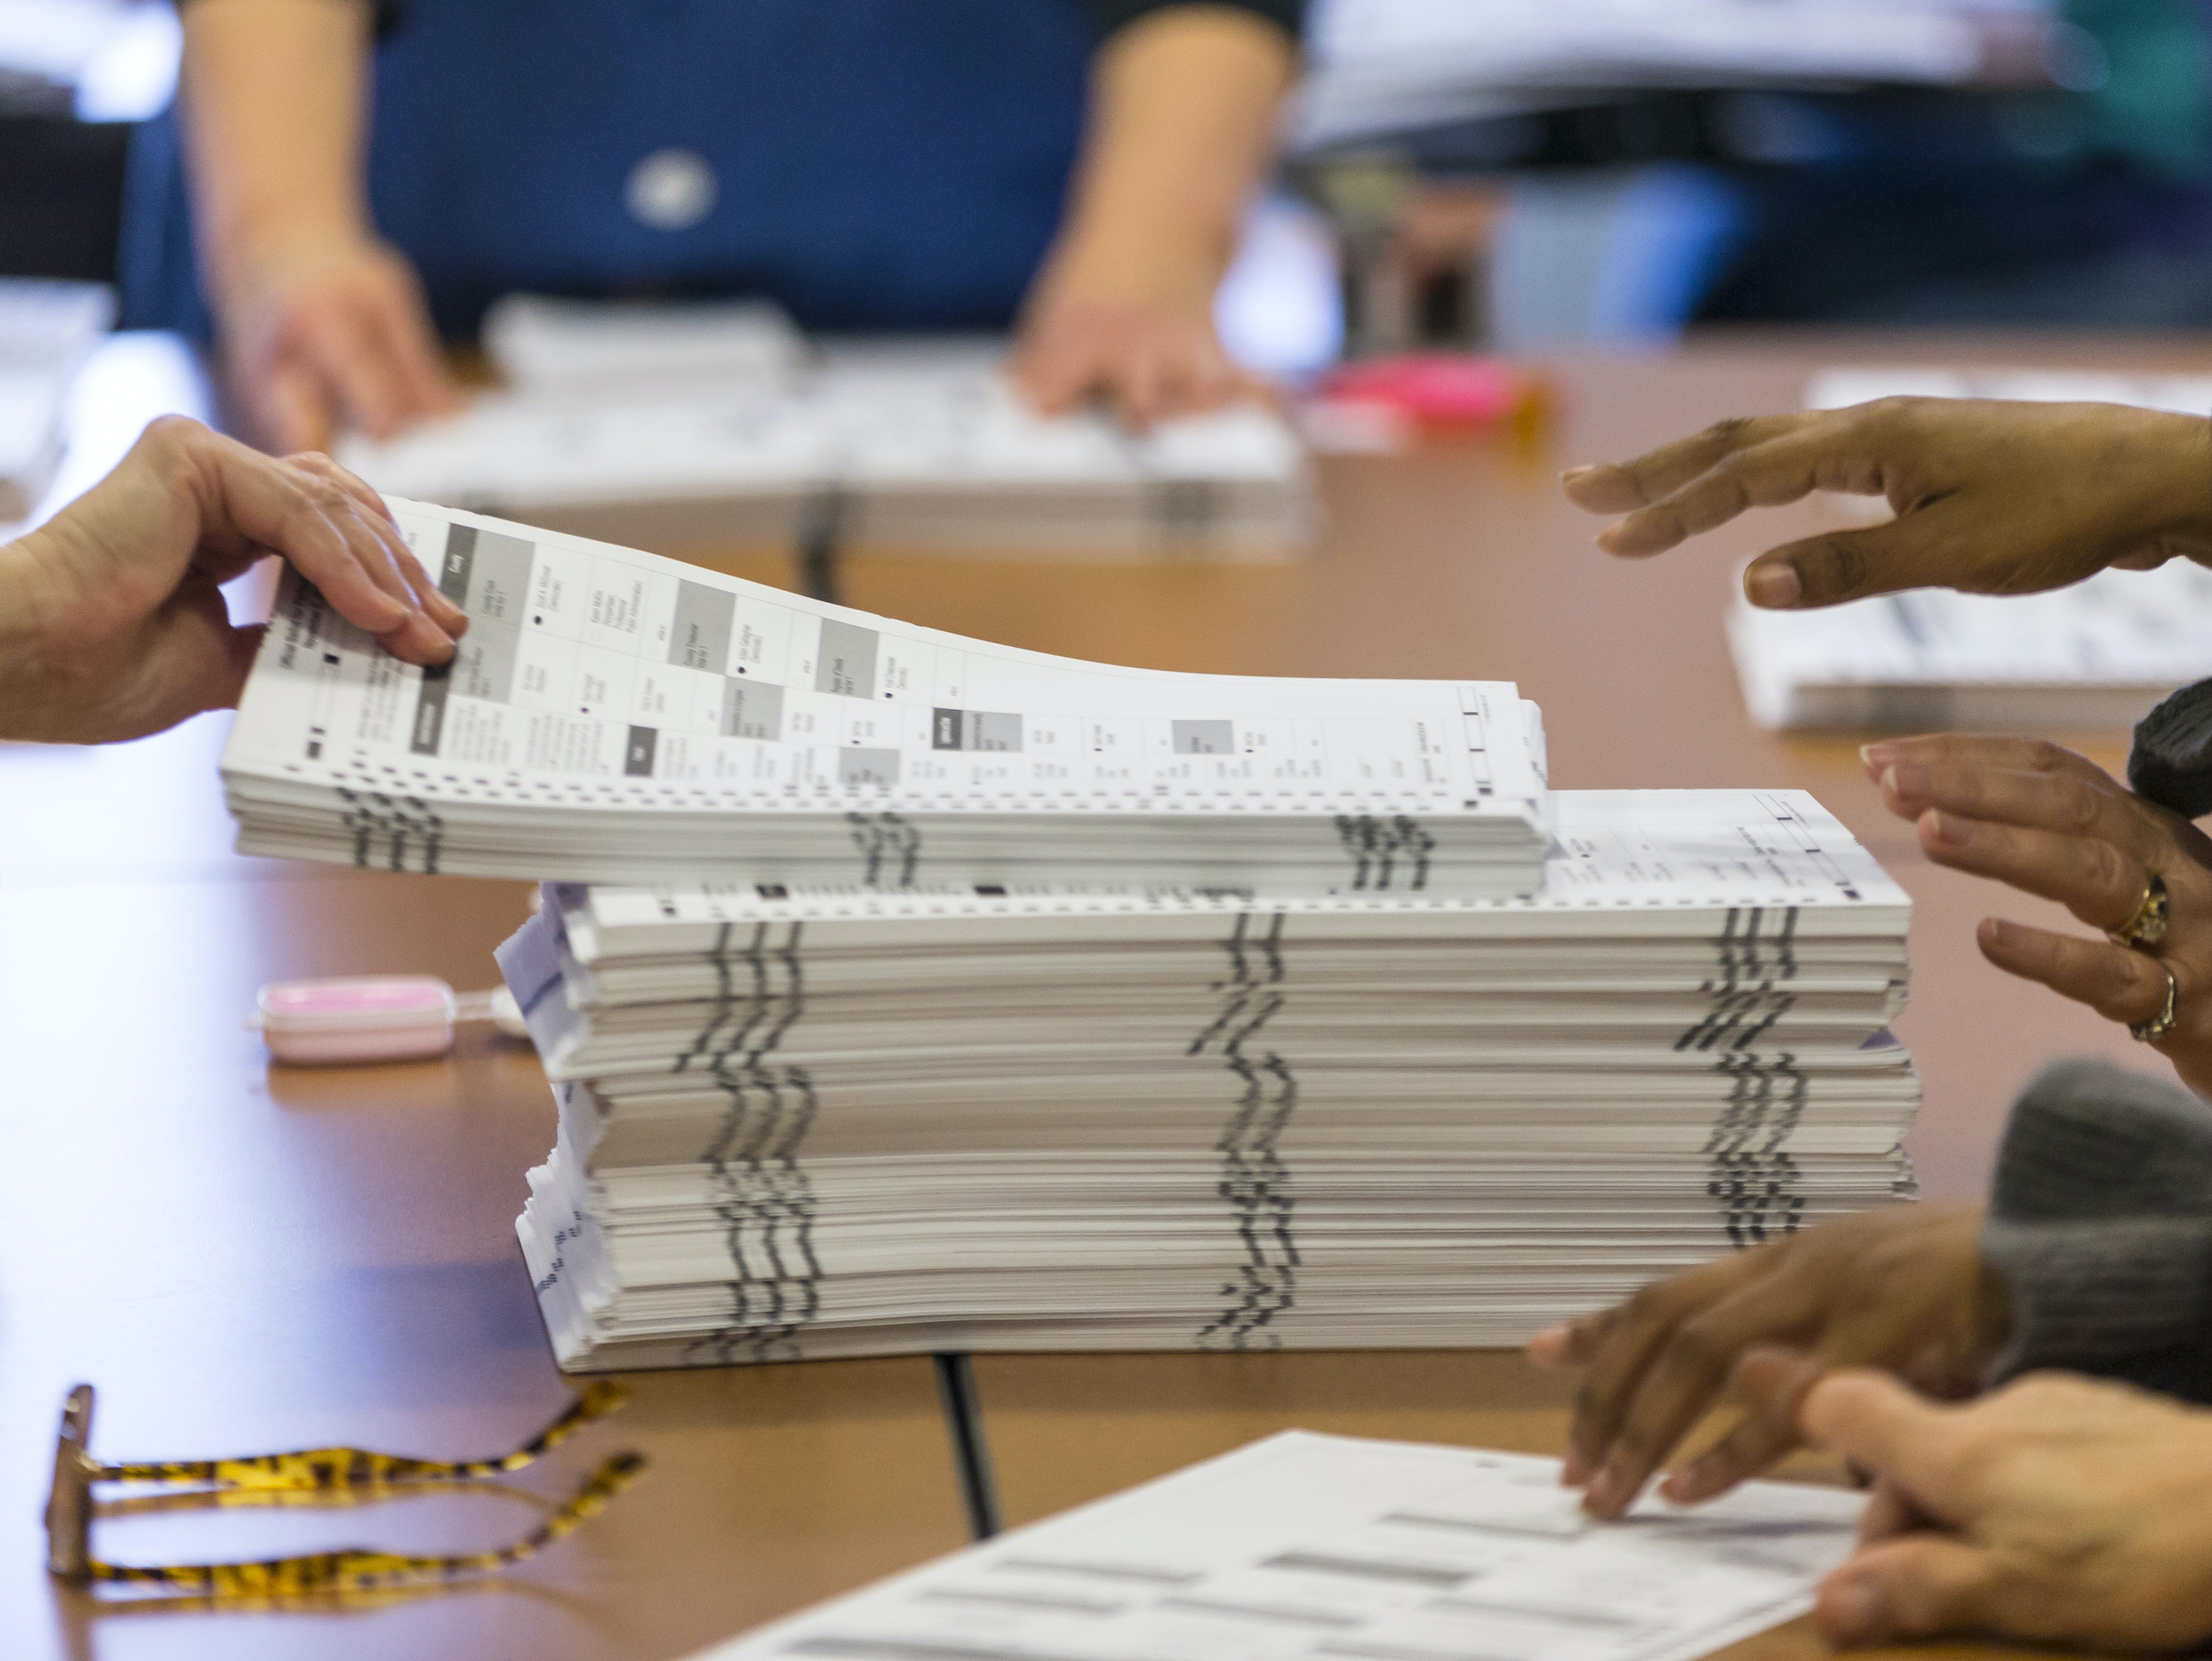 How Does Ranked-Choice Voting Work?